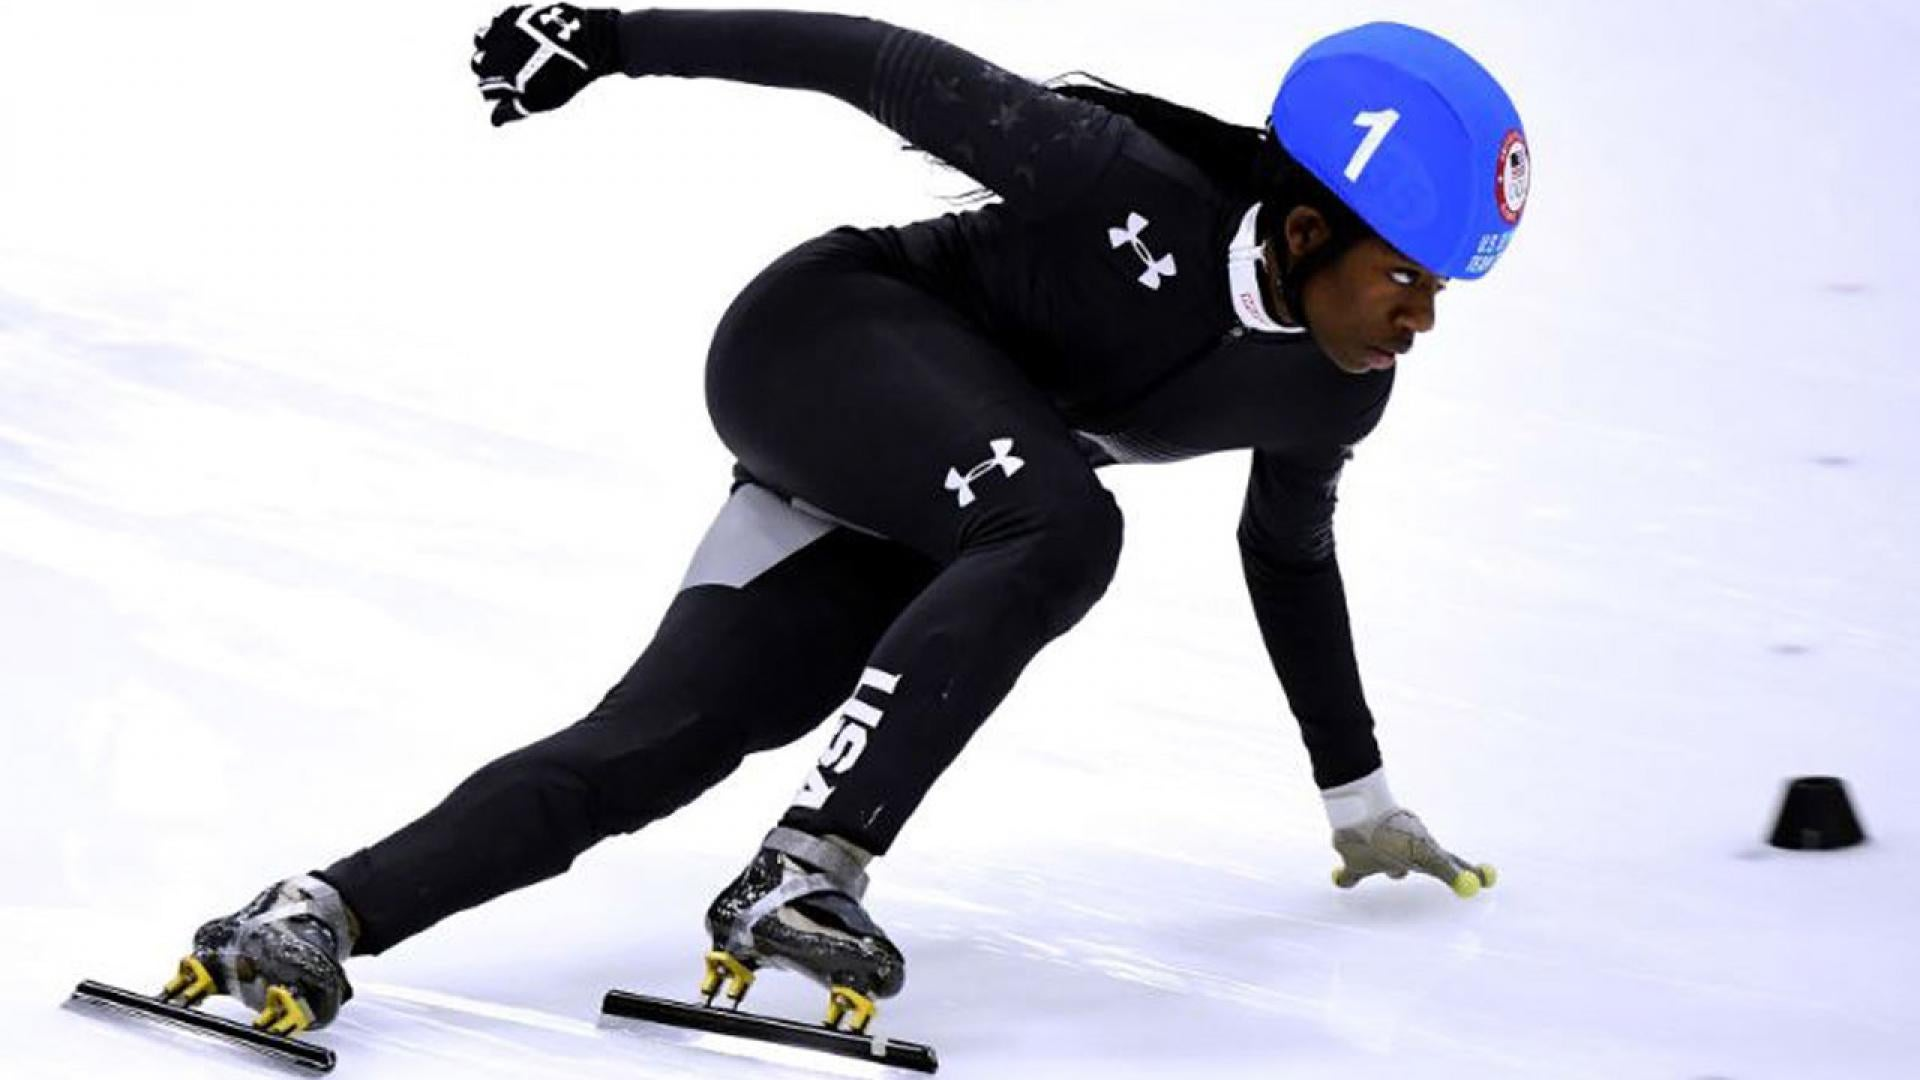 Maame Biney is the first black woman to qualify for Olympic speedskating.